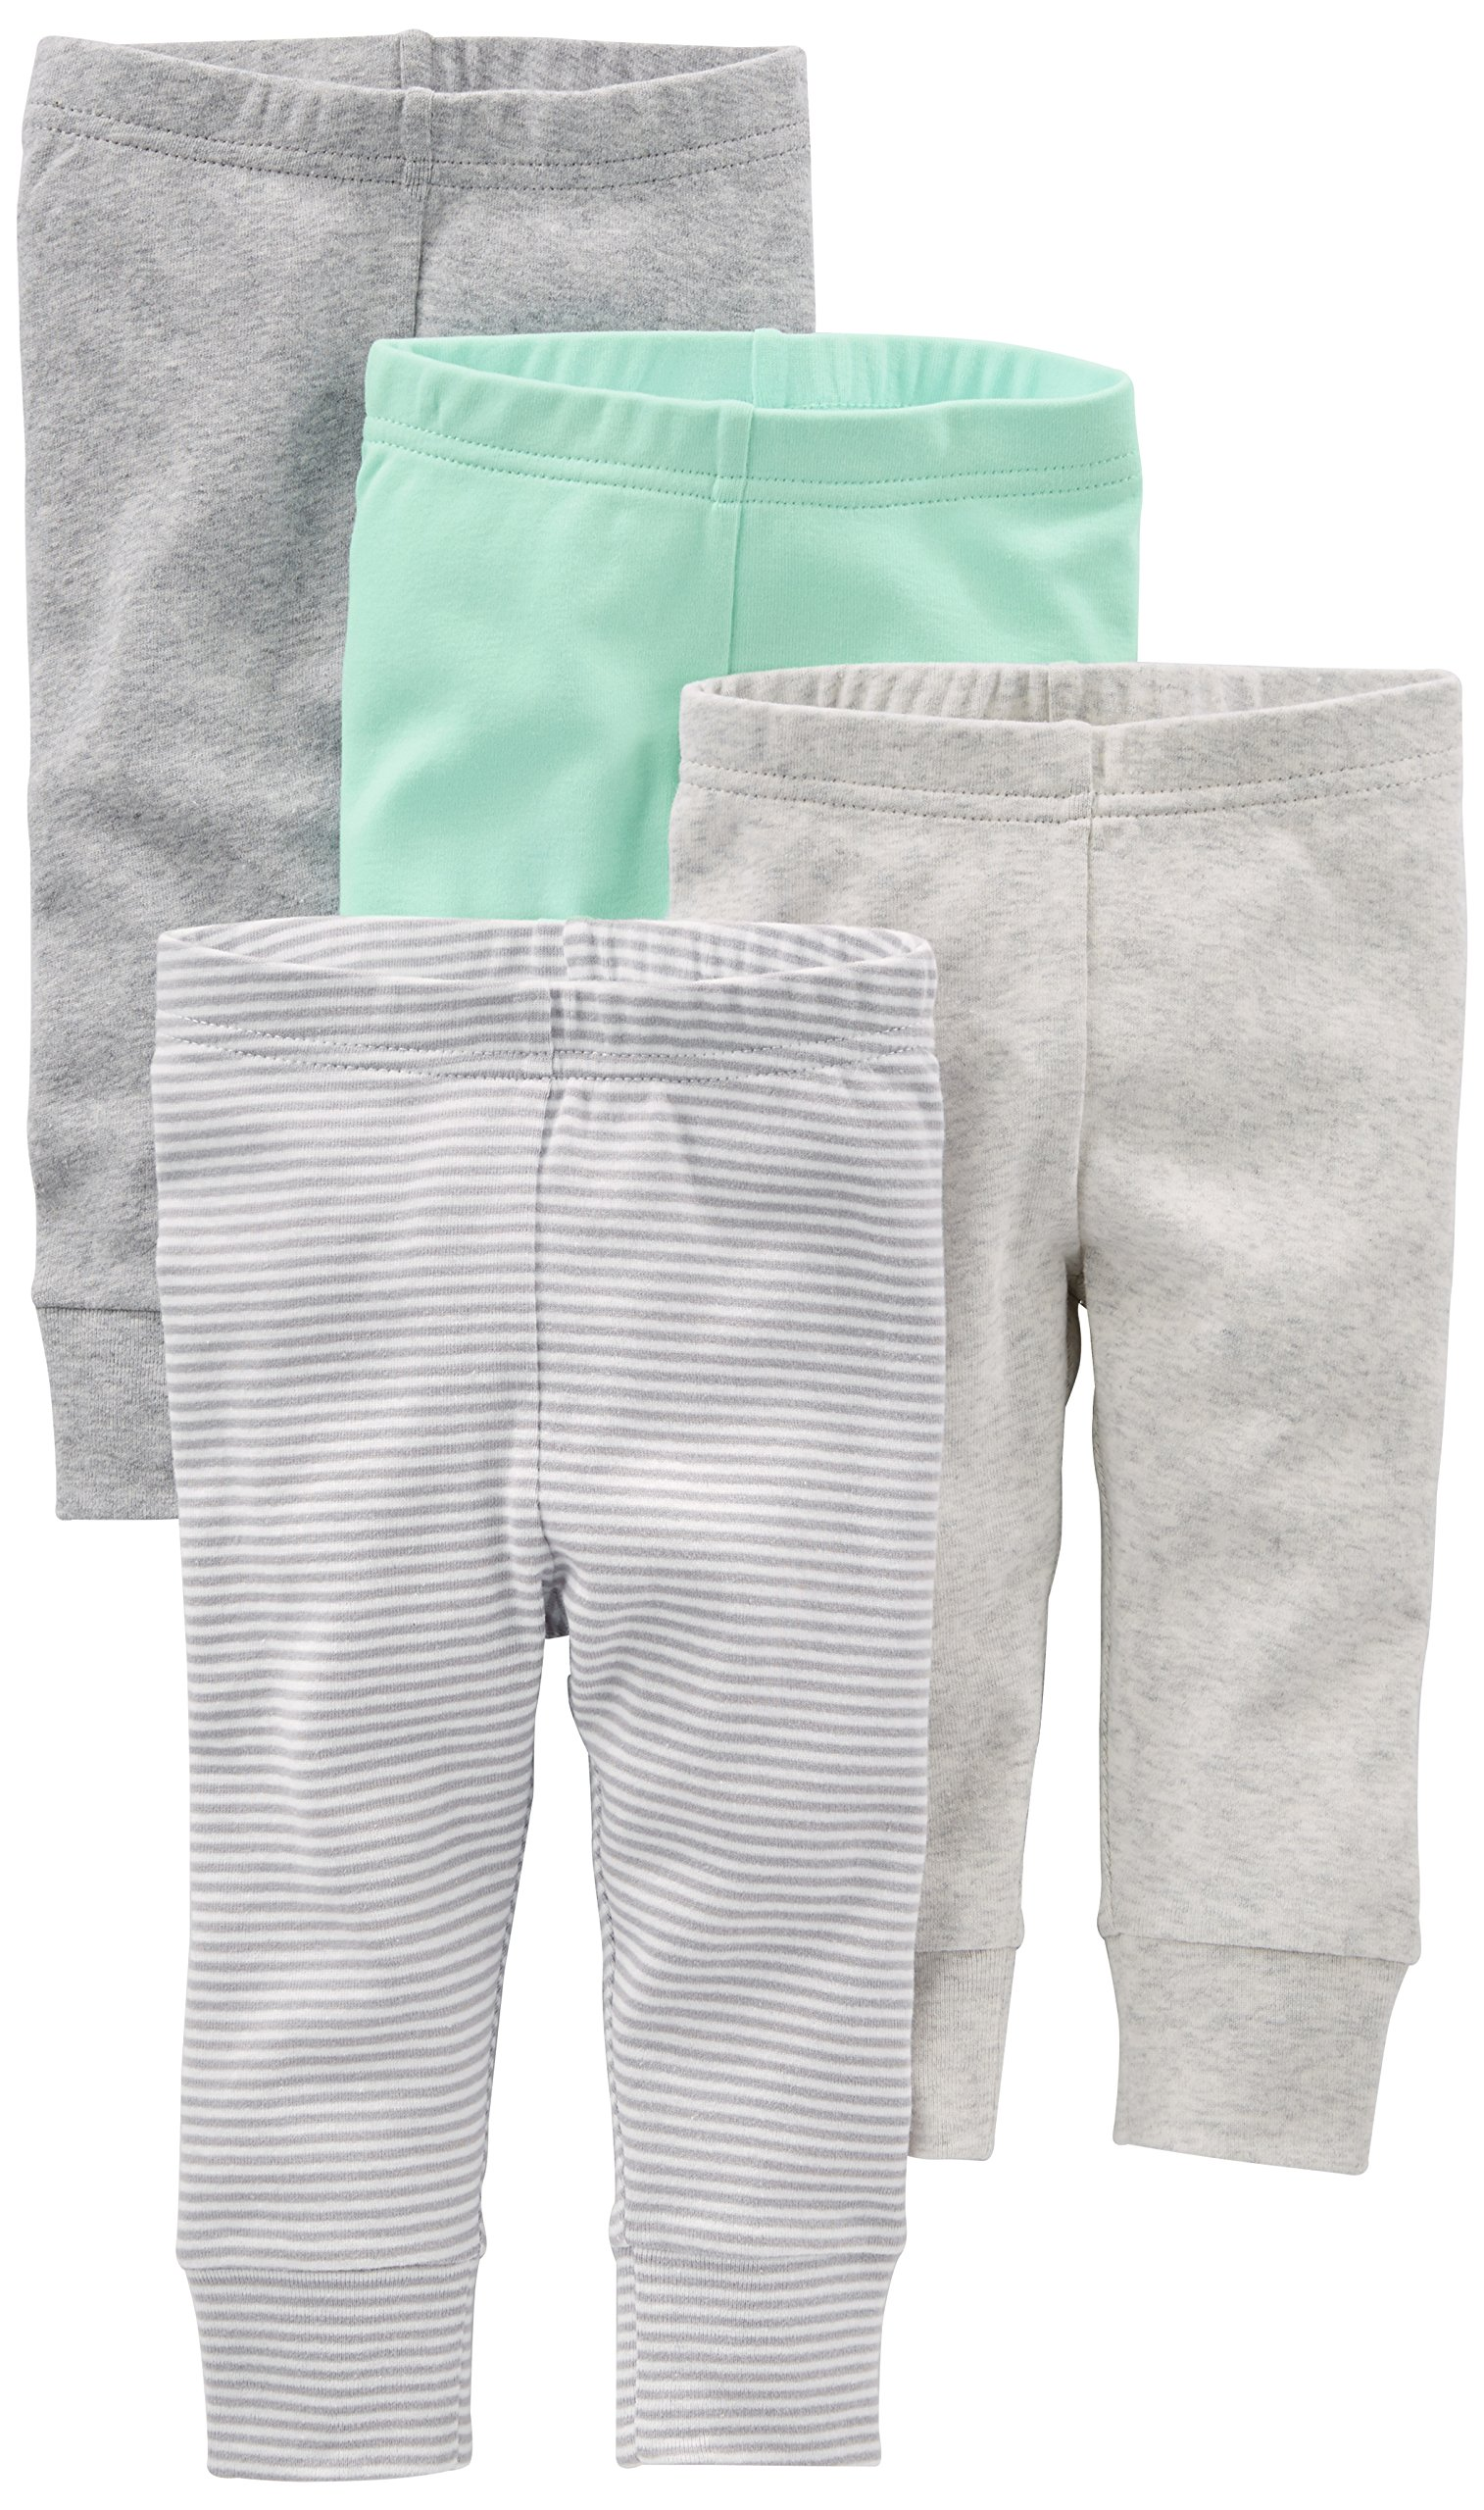 Simple Joys by Carter's Baby 4-Pack Pant, Gray/Mint, 18 Months